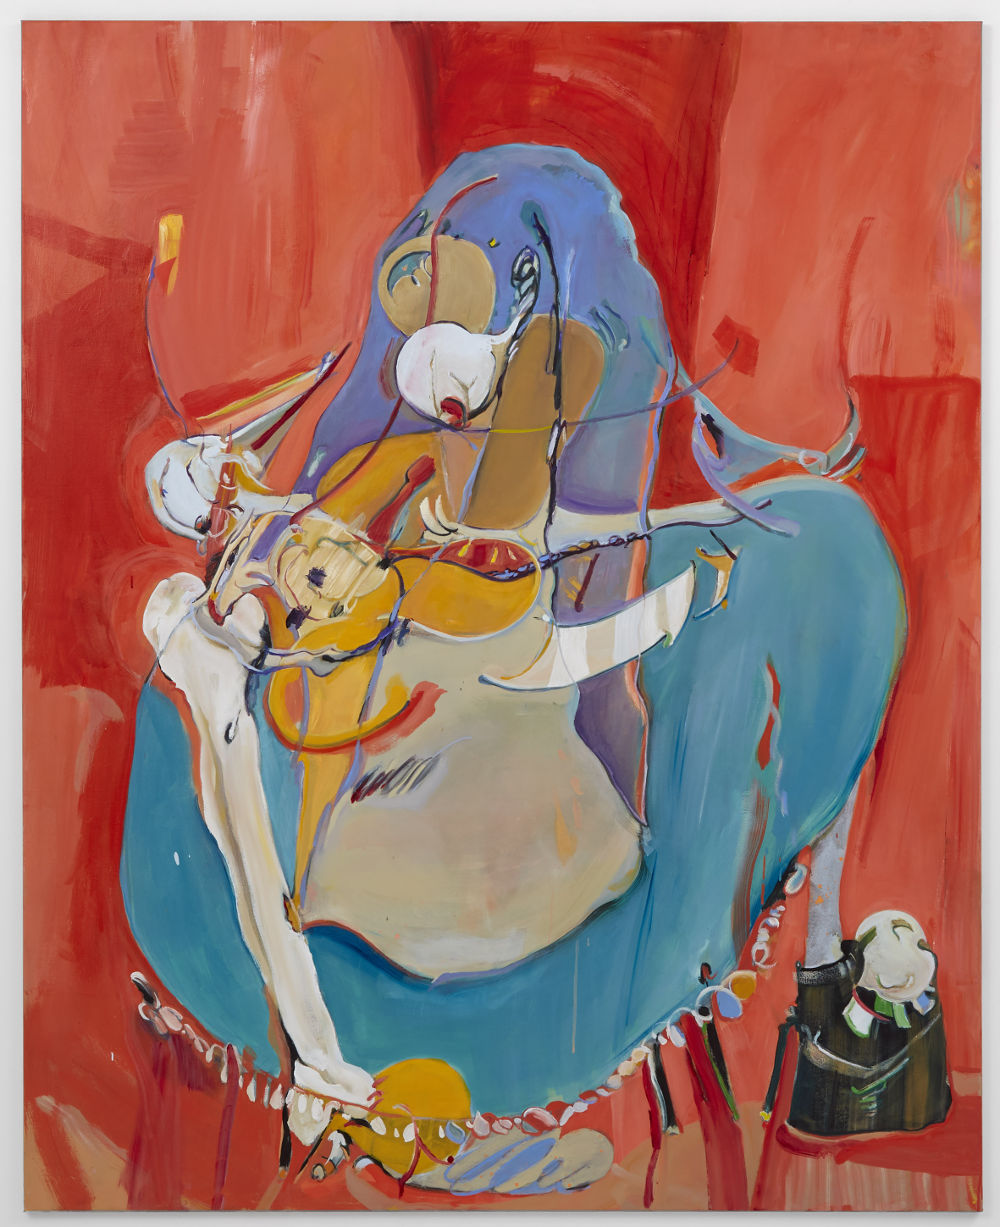 Stefanie Heinze, Bone On Skin (Mary-Won't-Go-Around), 2017, oil and acrylic on canvas, 180 x 145 cm, 70.9 x 57.1 in. Private Collection. Courtesy Pippy Houldsworth Gallery, London.